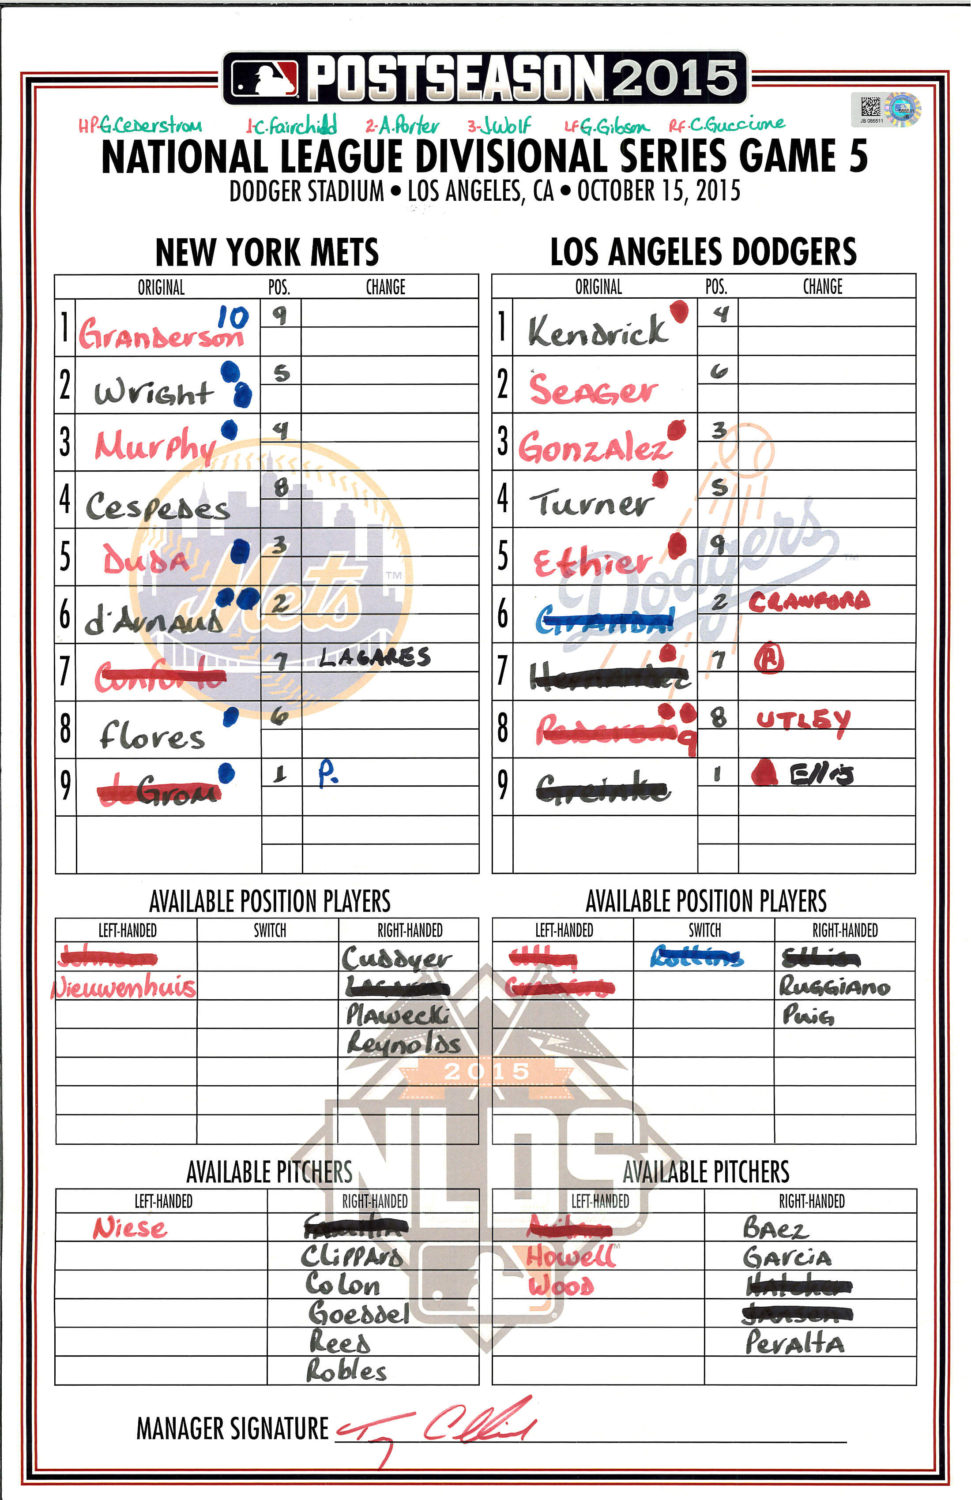 Lineup Card: Game 5 of the 2015 NLDS